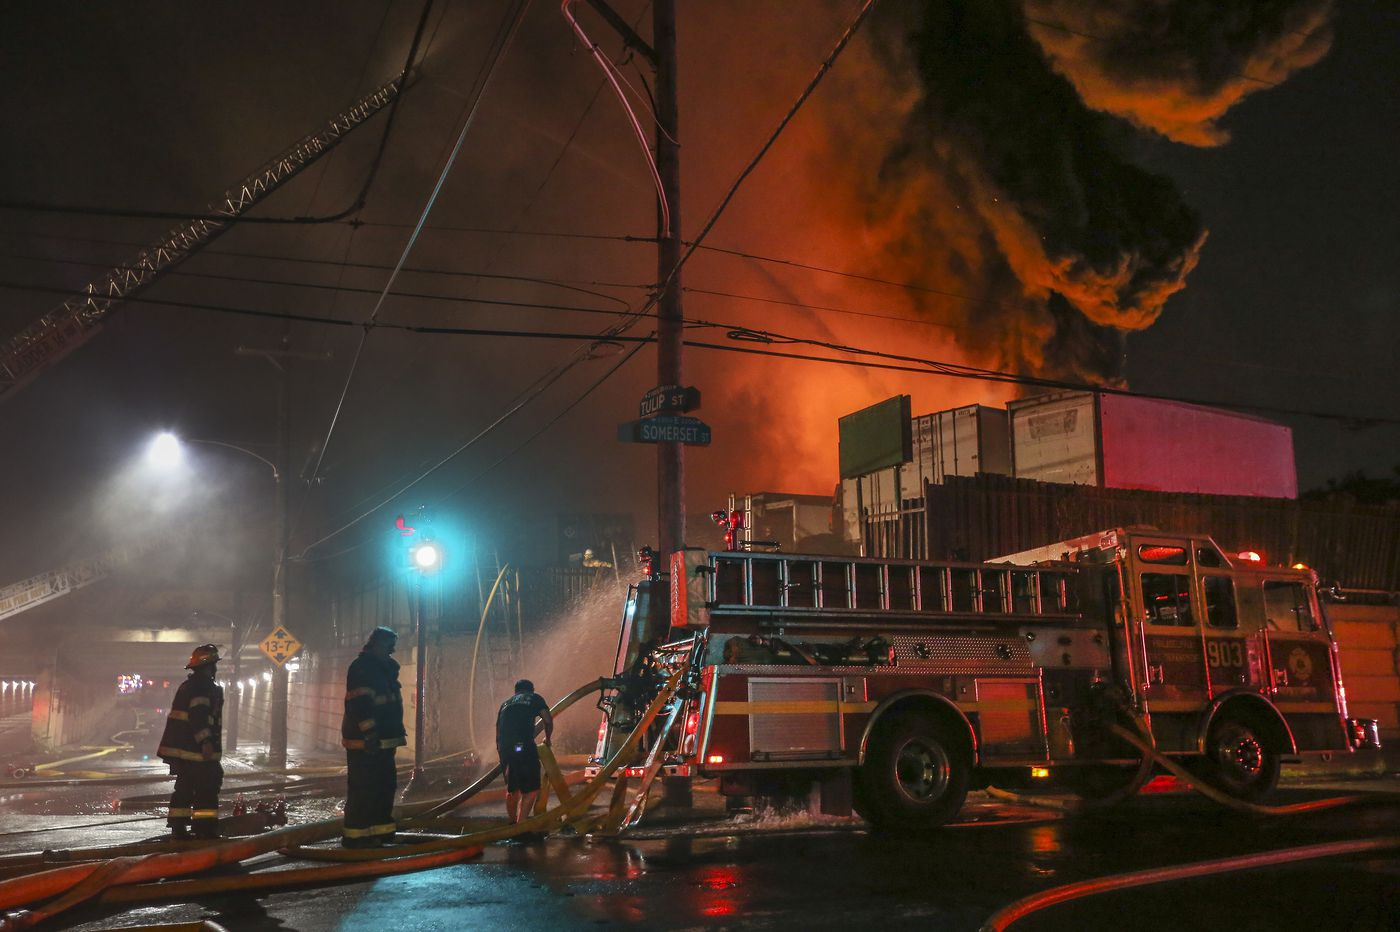 Kensington junkyard, site of spectacular fire, code violations, must stay closed, judge rules